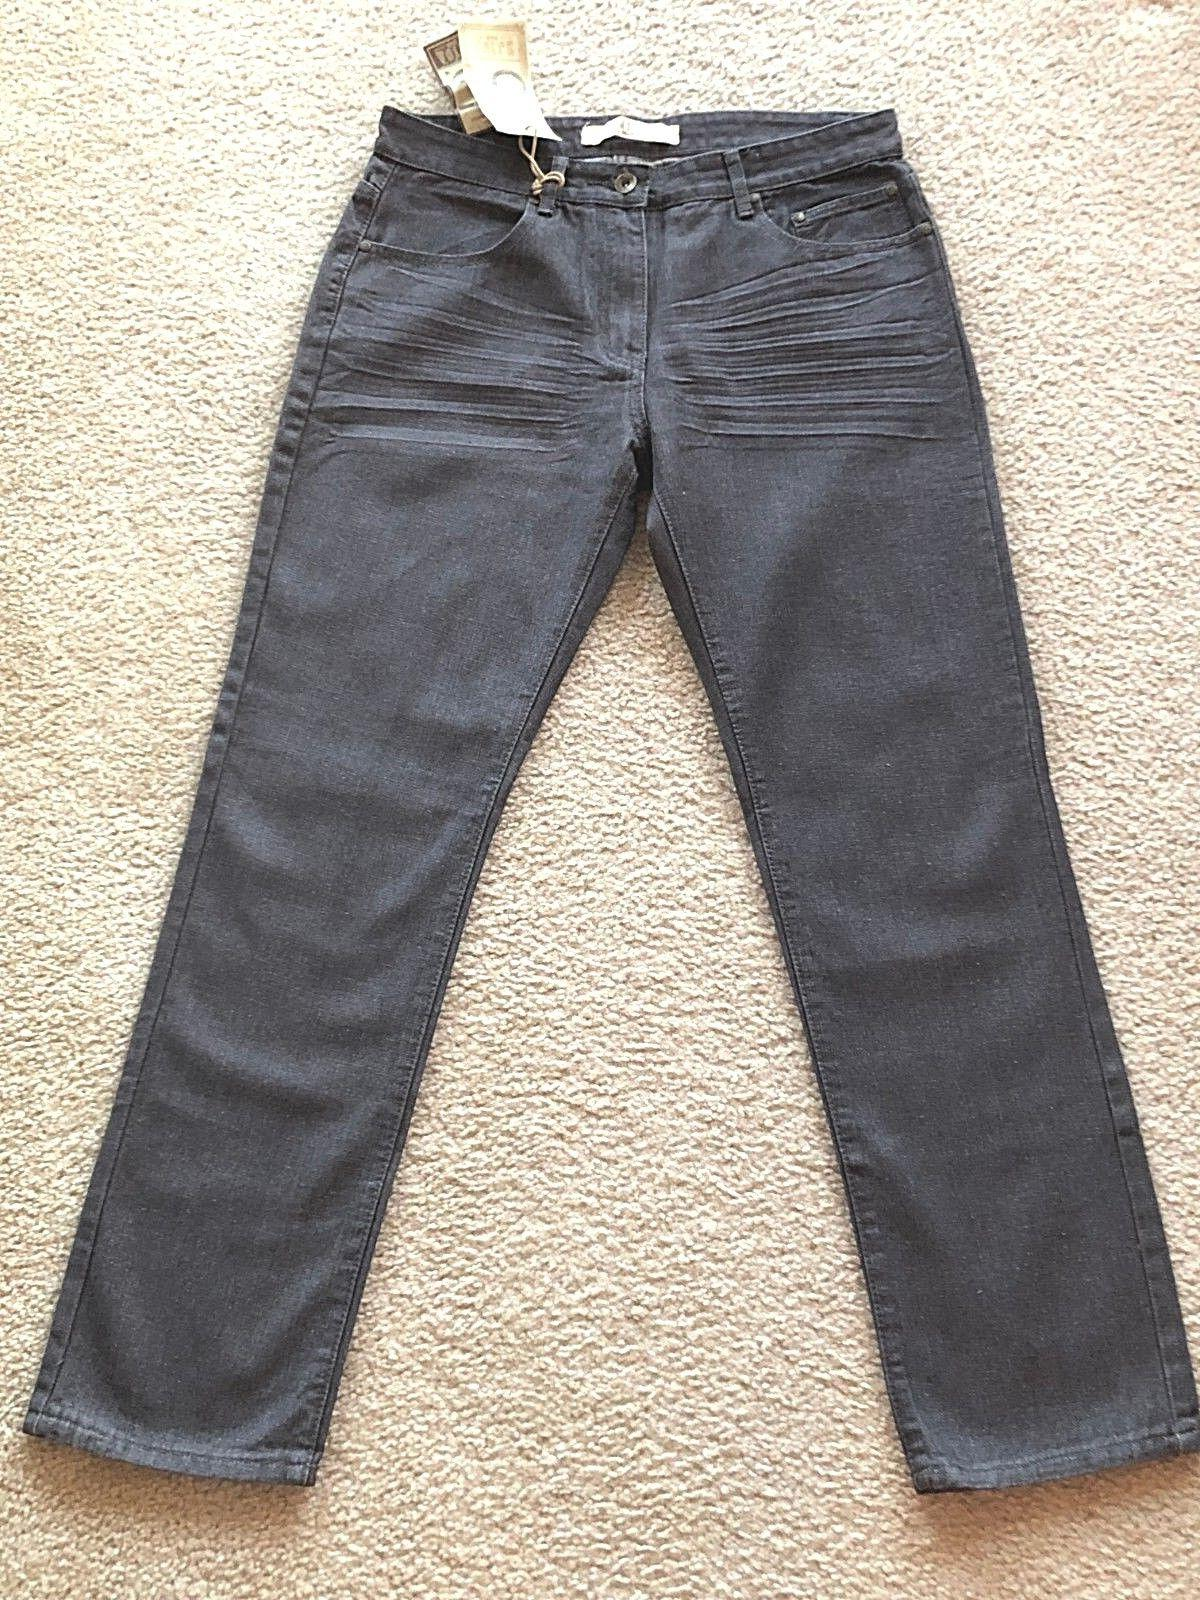 NWT . AGILE . Men's Gray Jeans . Sz.